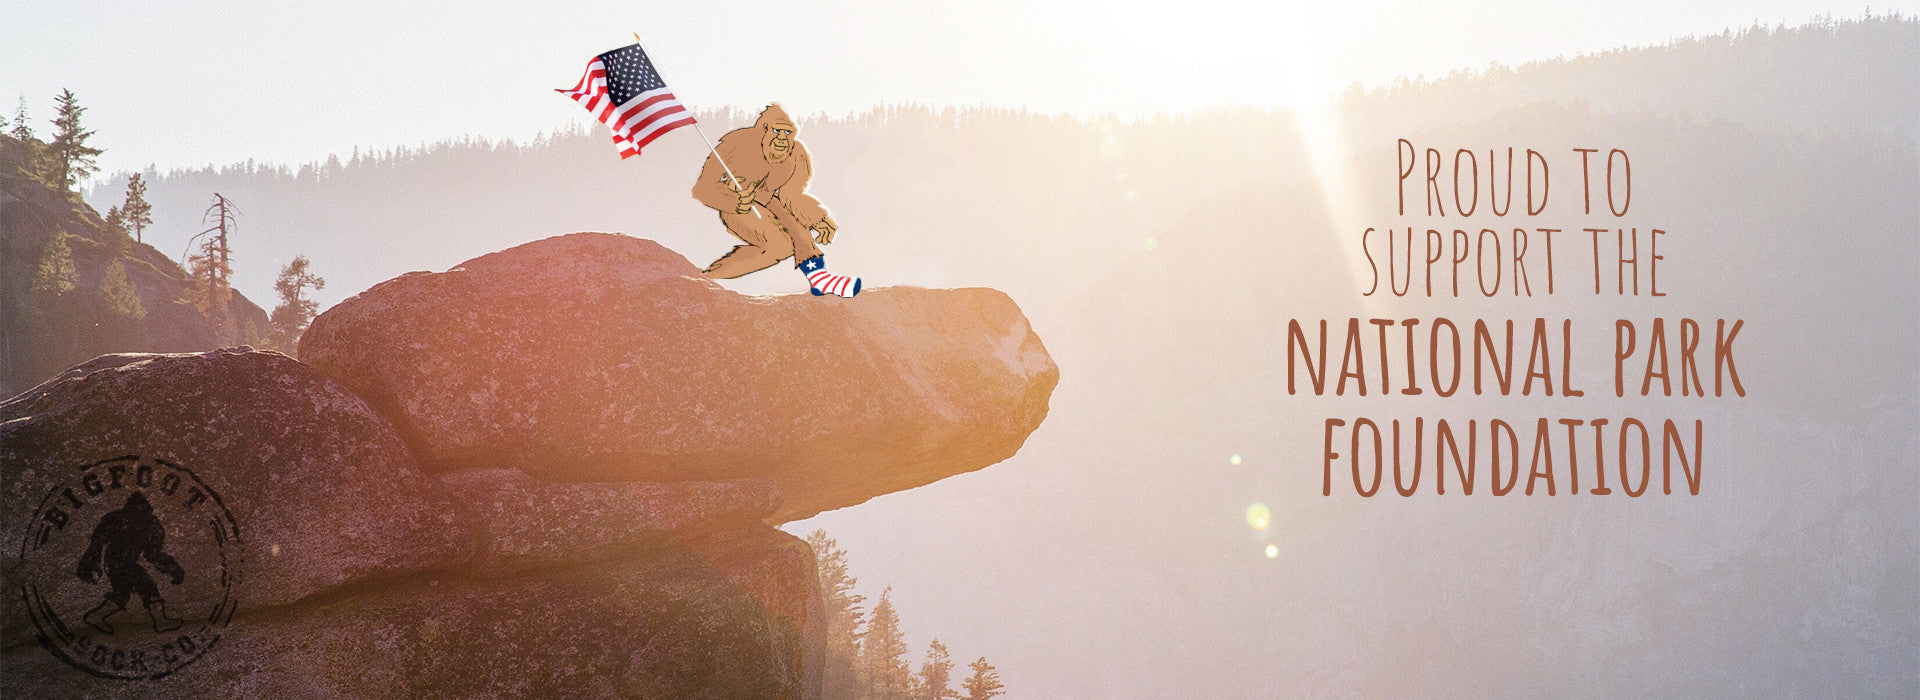 Bigfoot Socks Support National Park Foundation